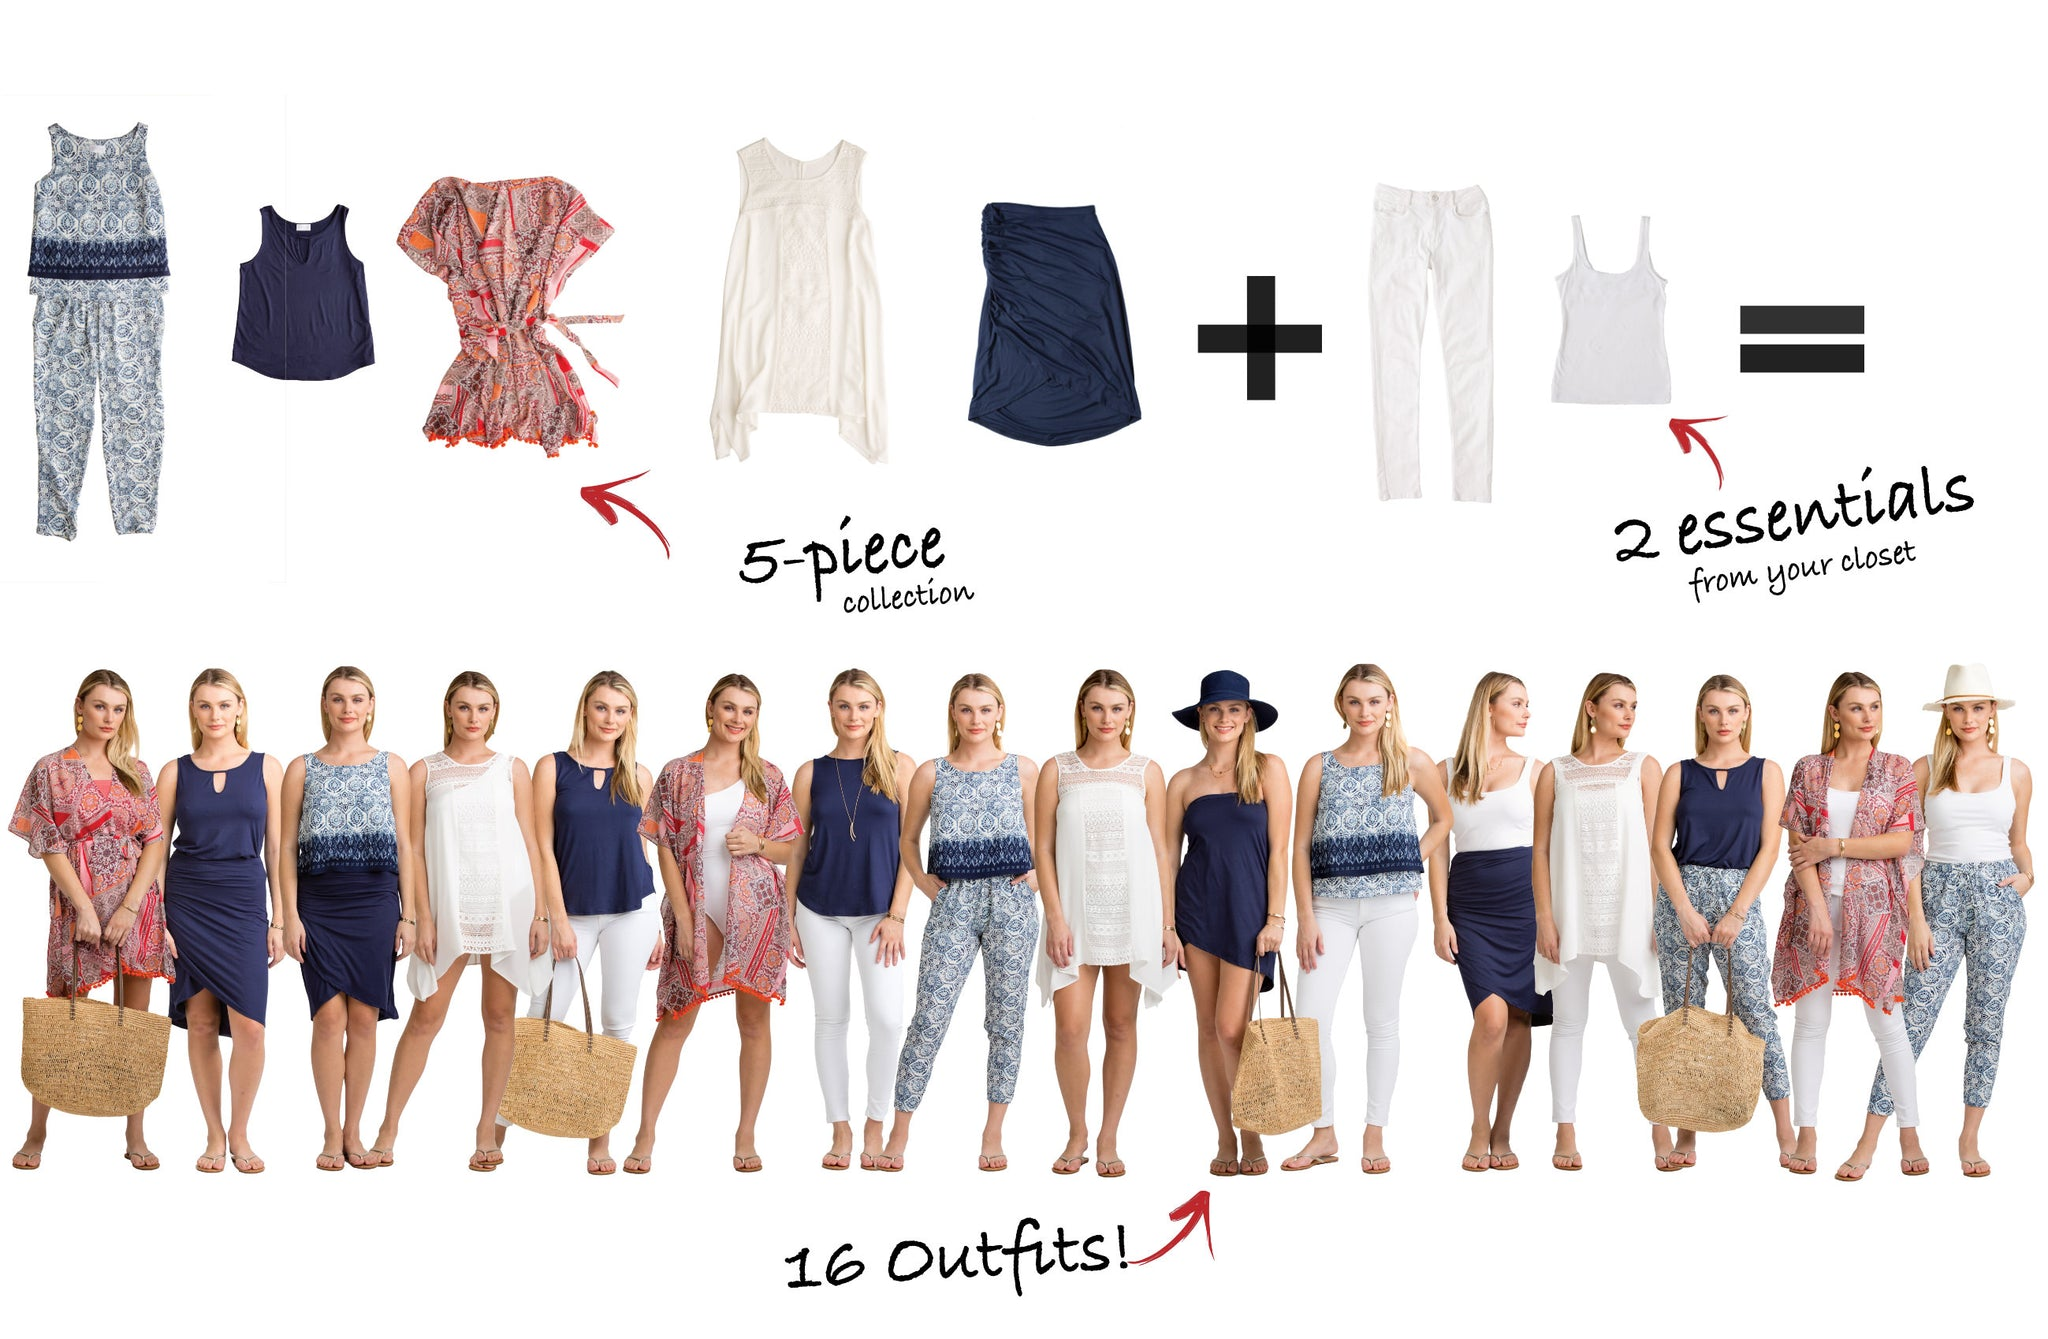 Vacay Antigua Collection: 5 items = 16 outfits